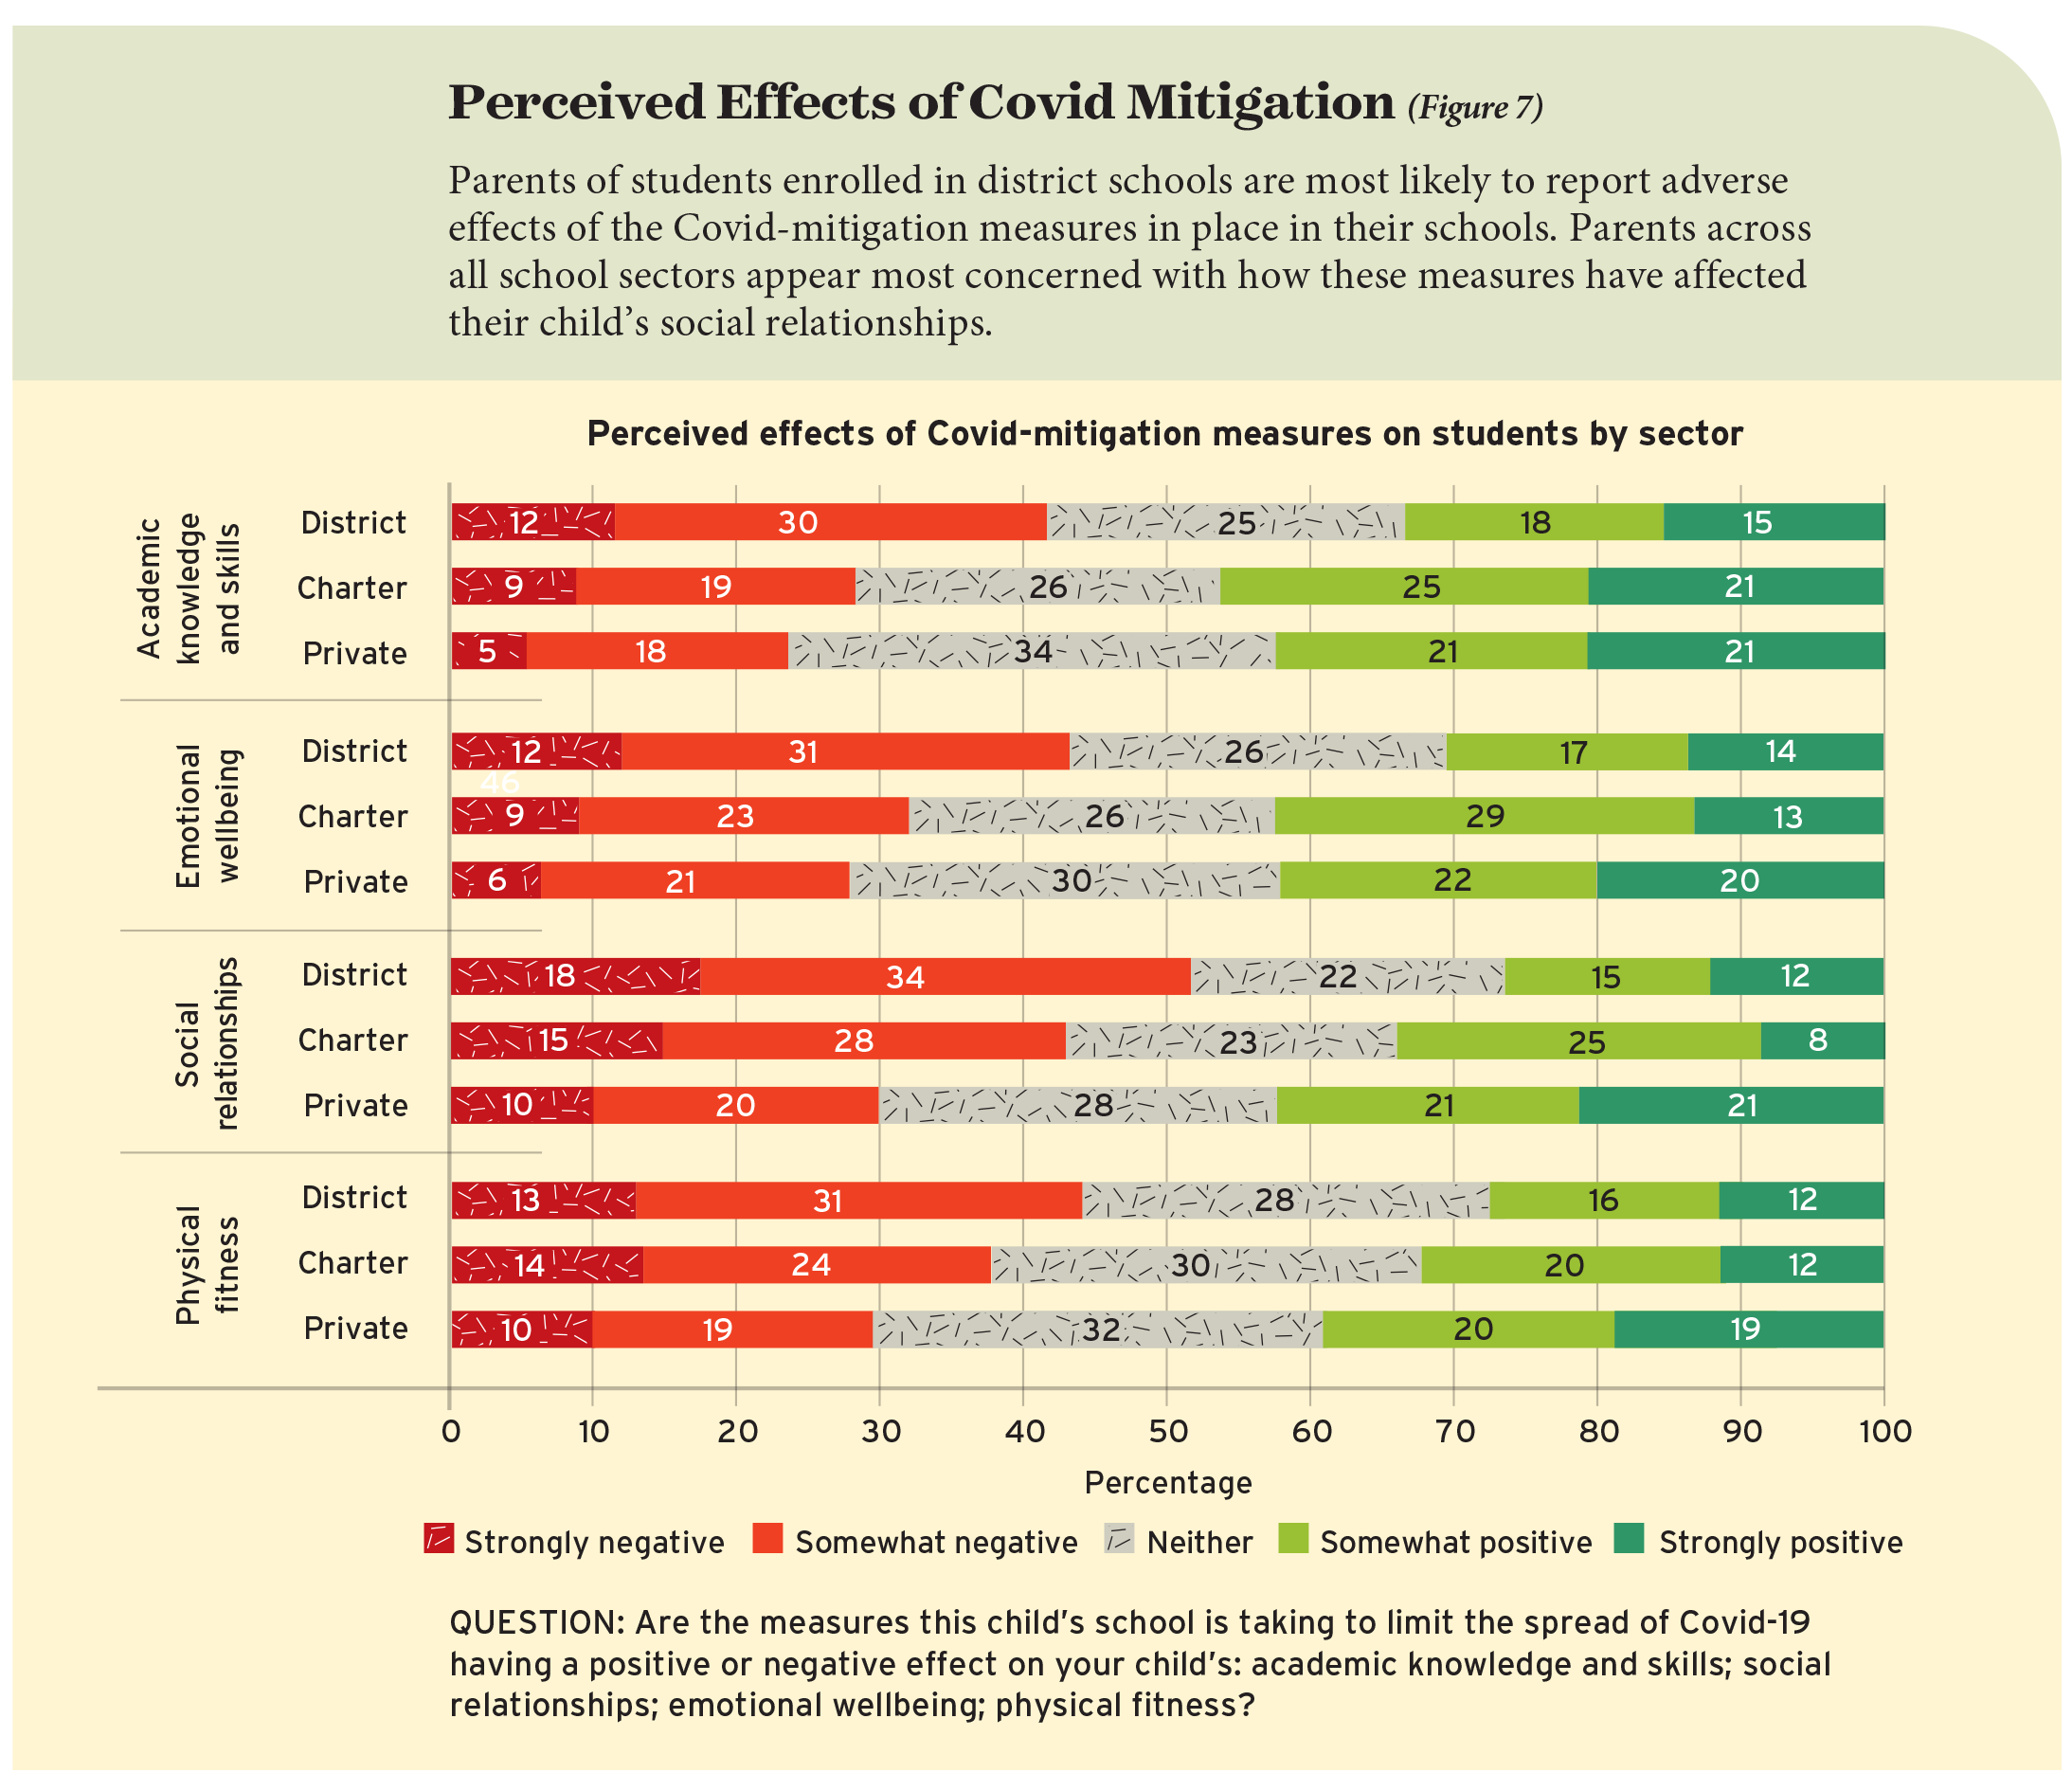 Perceived Effects of Covid Mitigation (Figure 7)